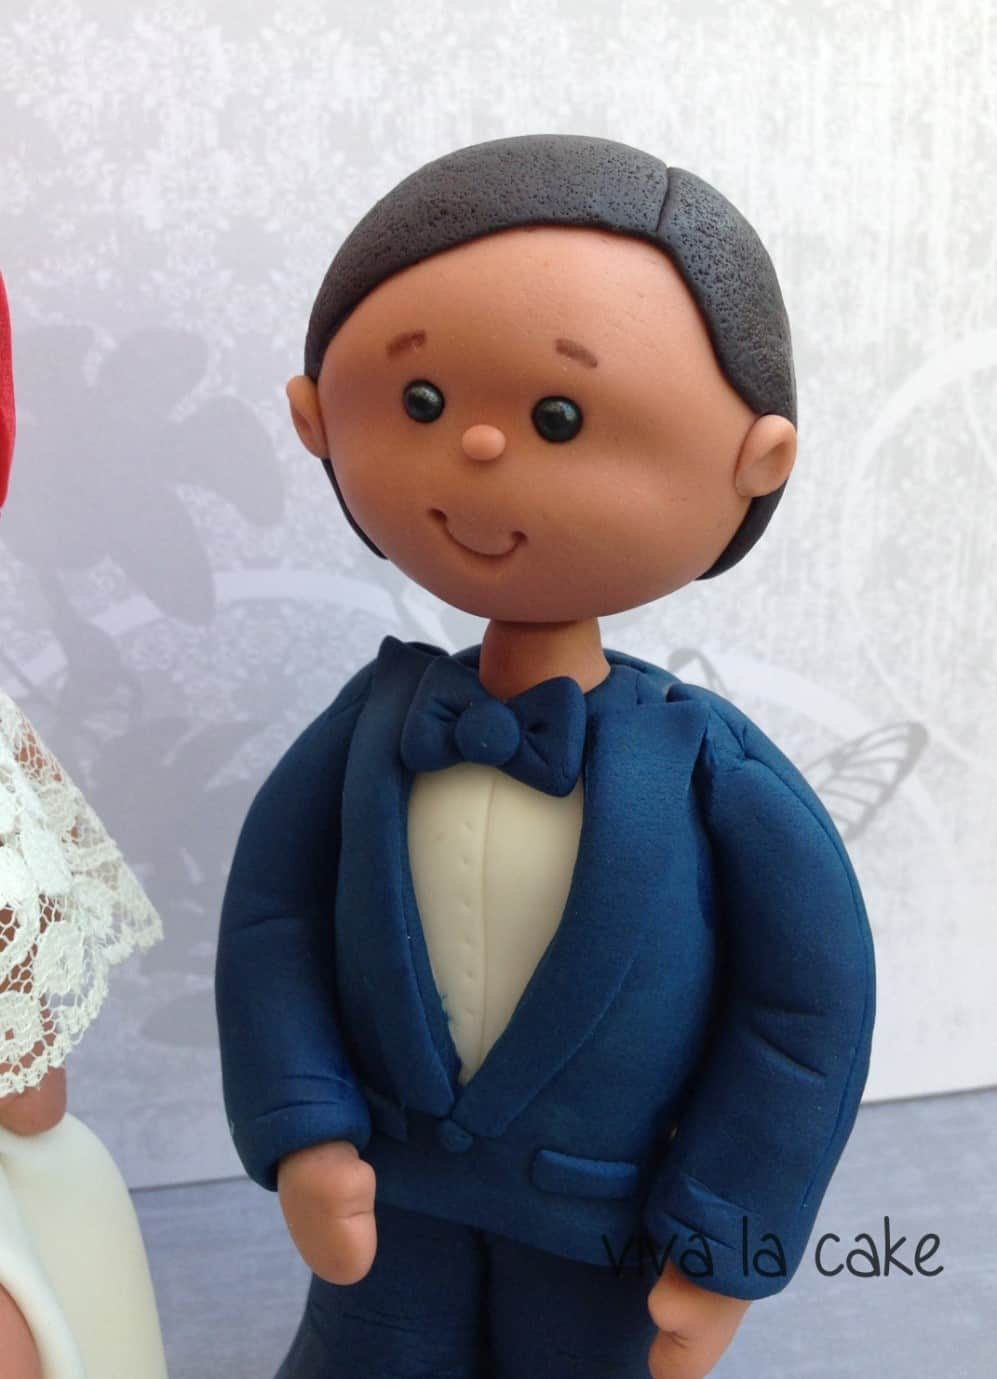 Groom Figurine Cake Topper Tutorial